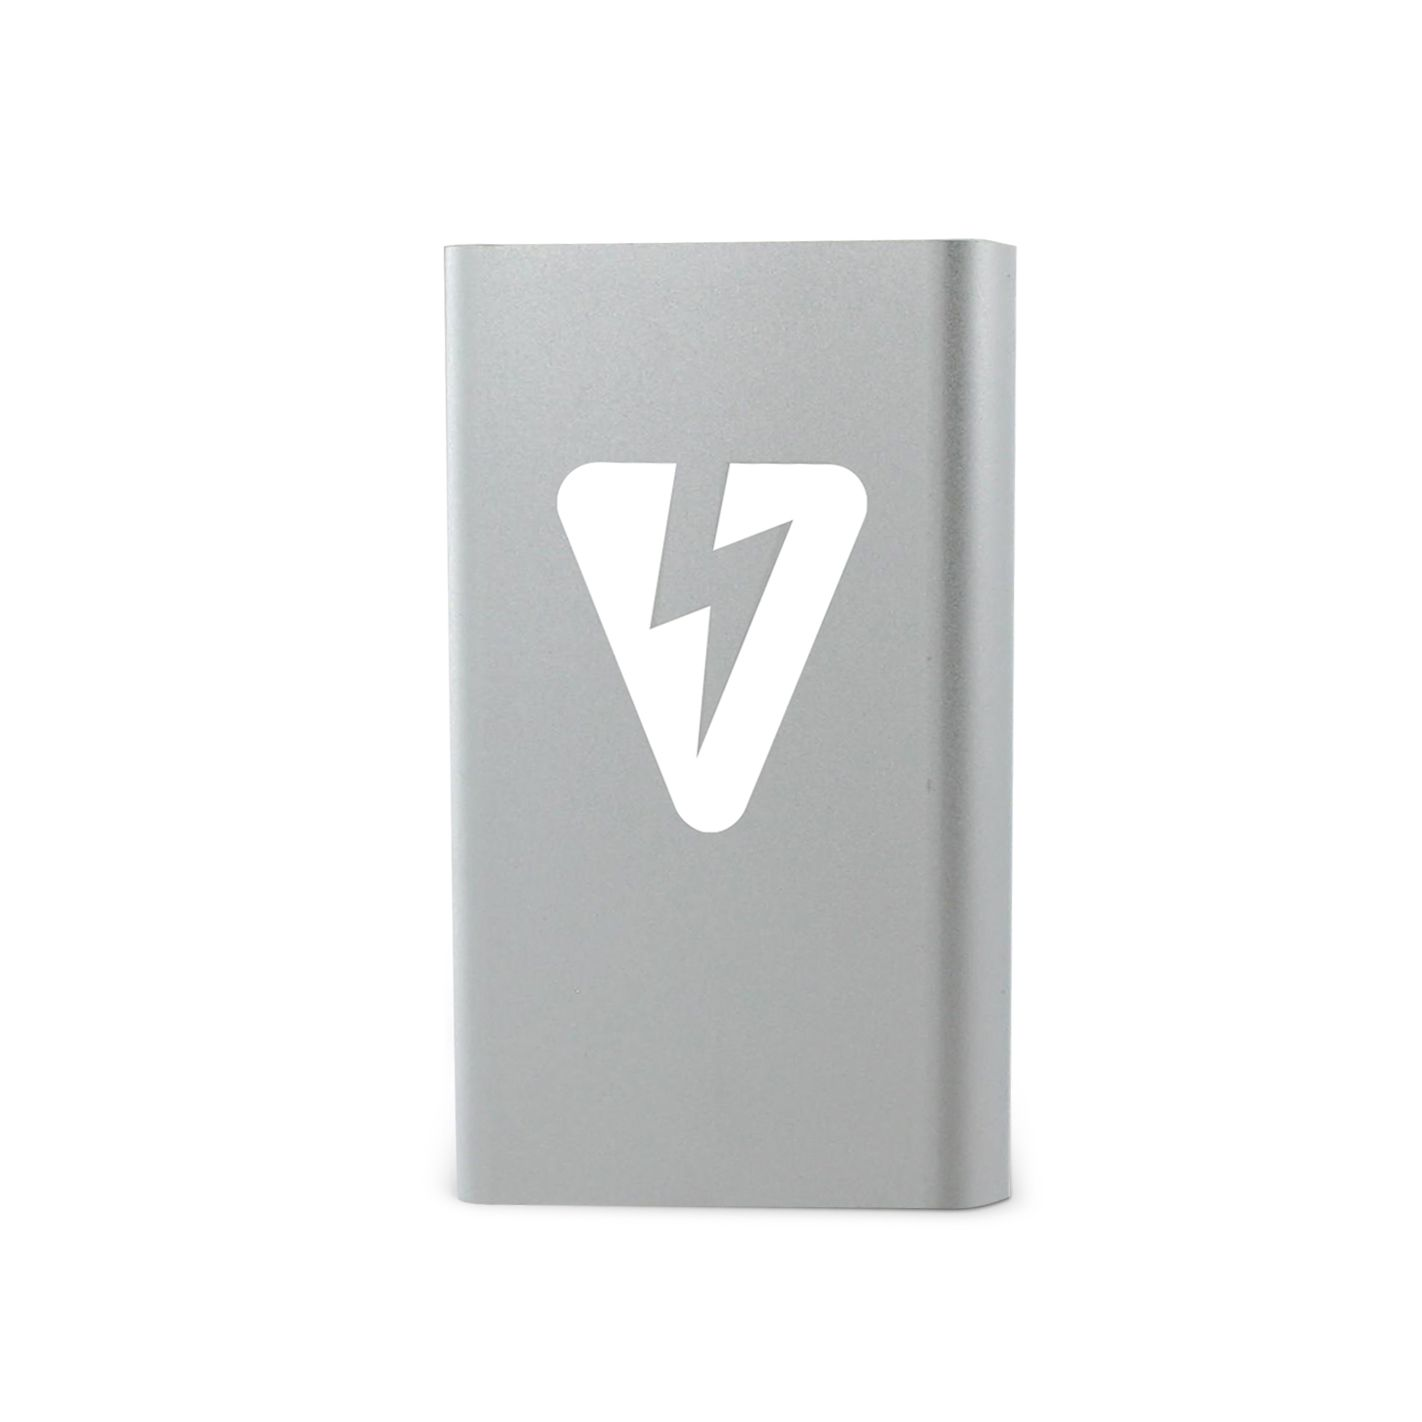 Image of   EROVOLT POWERBANK - OPLADER